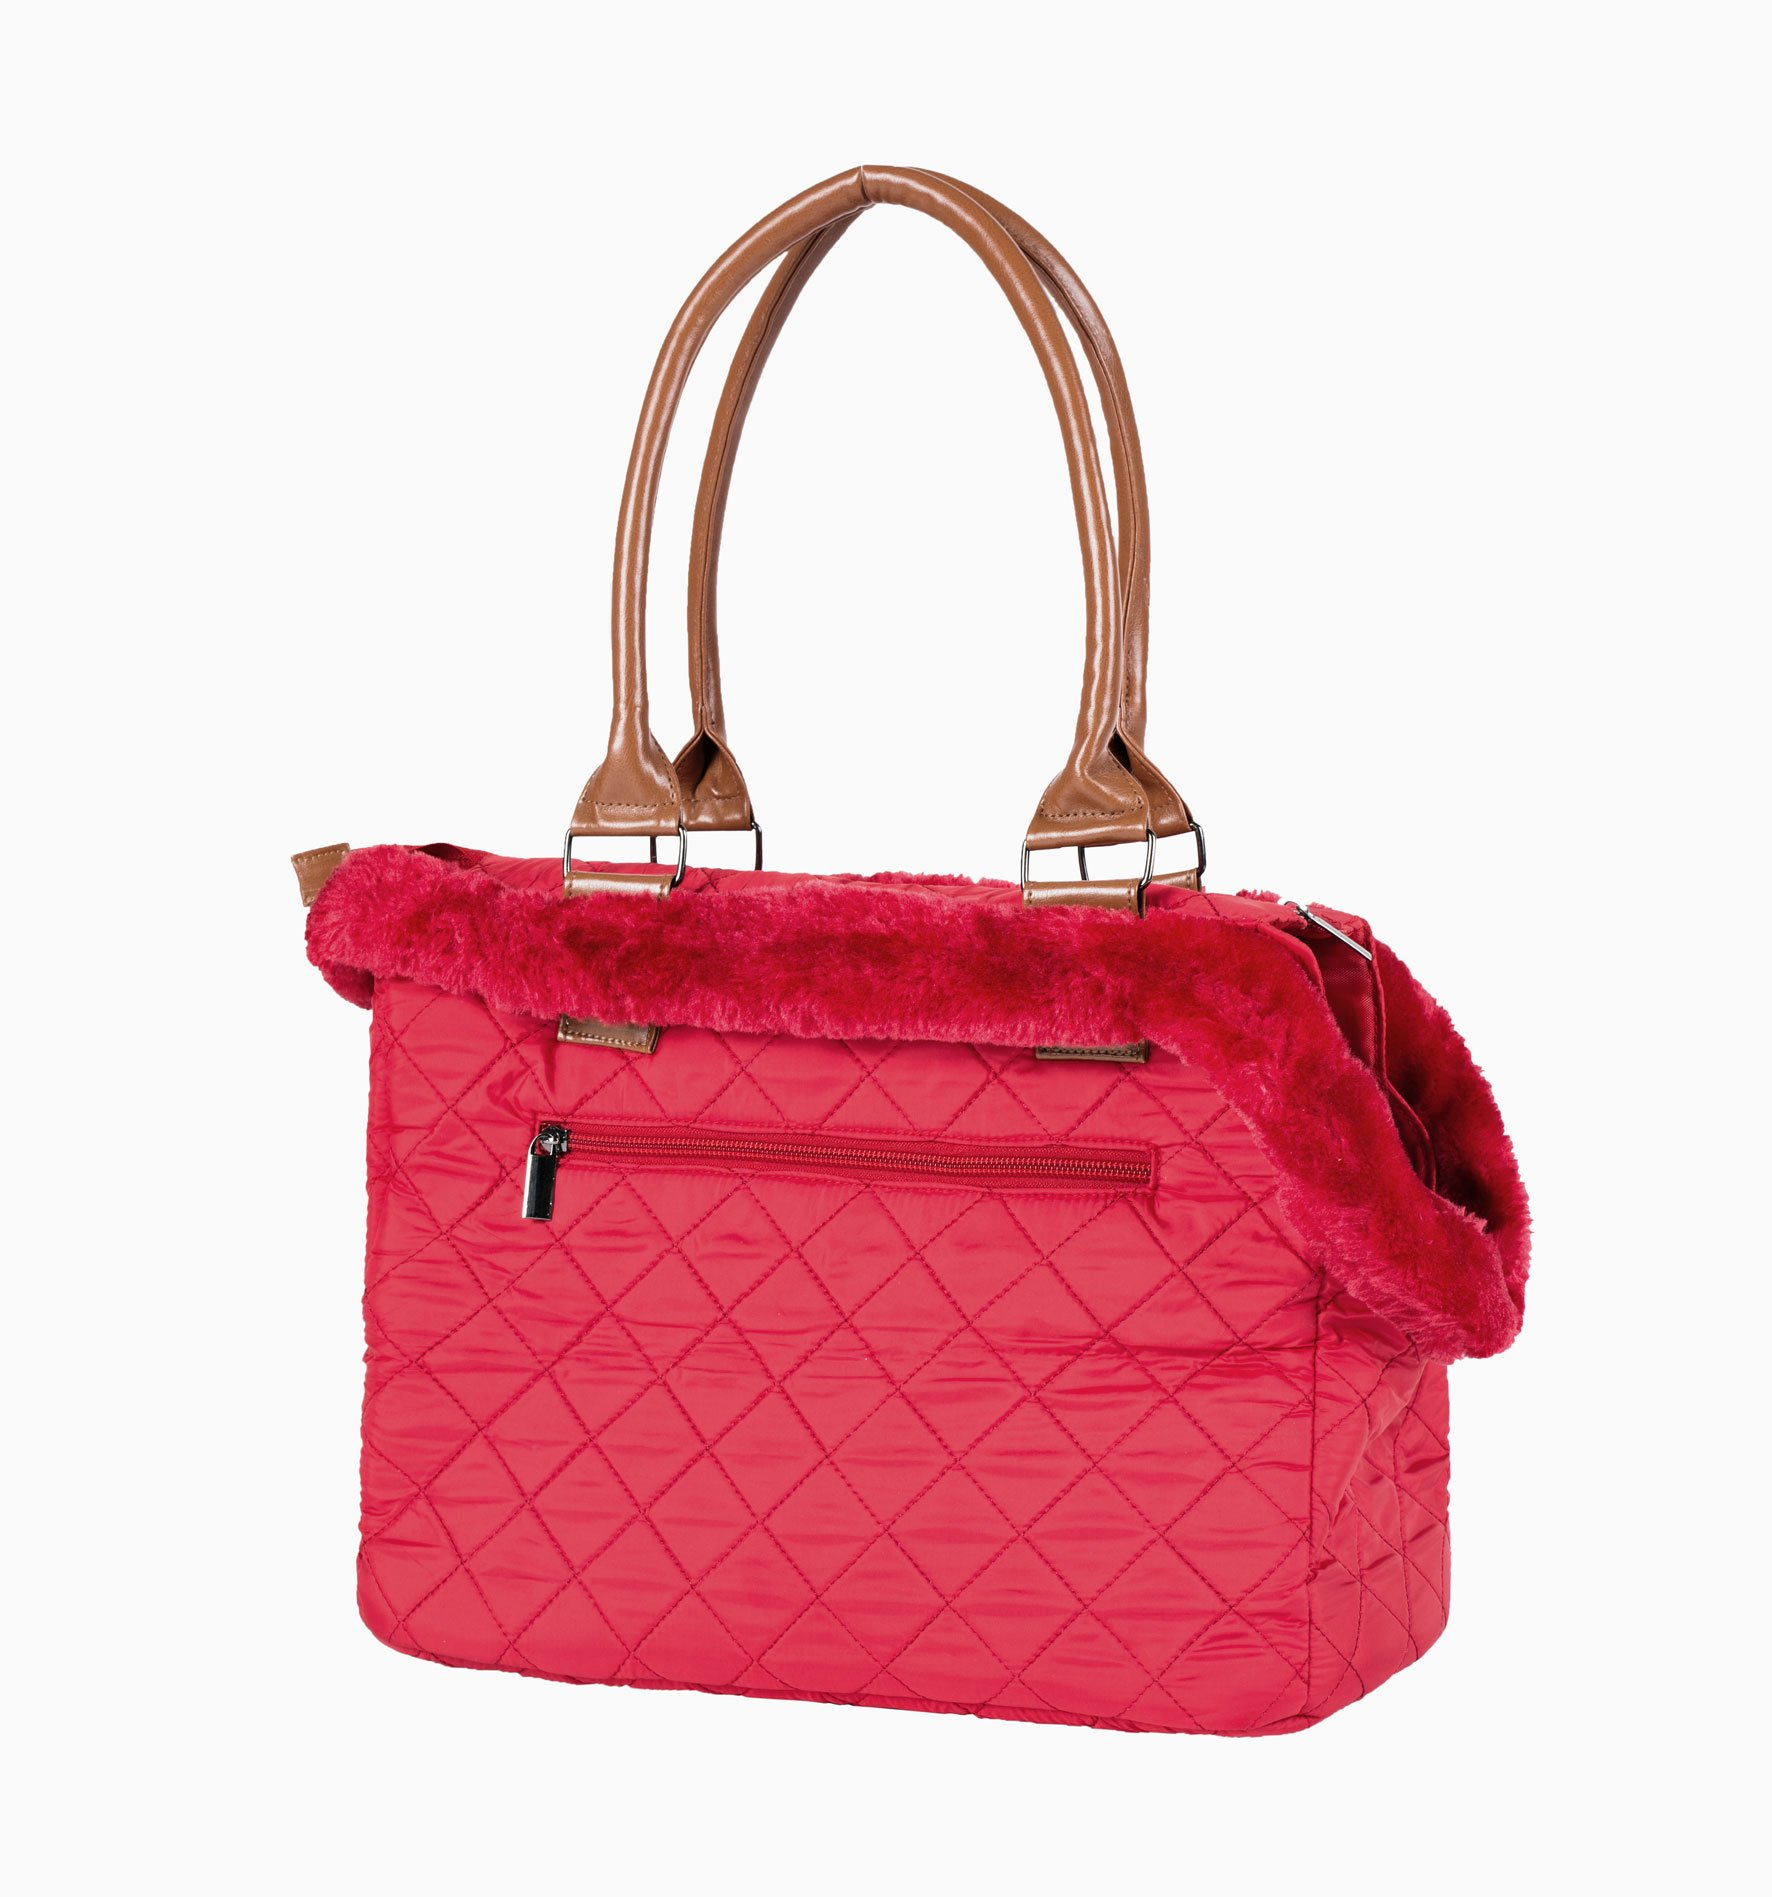 Wouapy Chic Transport Bag for Dog, Red by Wouapy (Image #1)